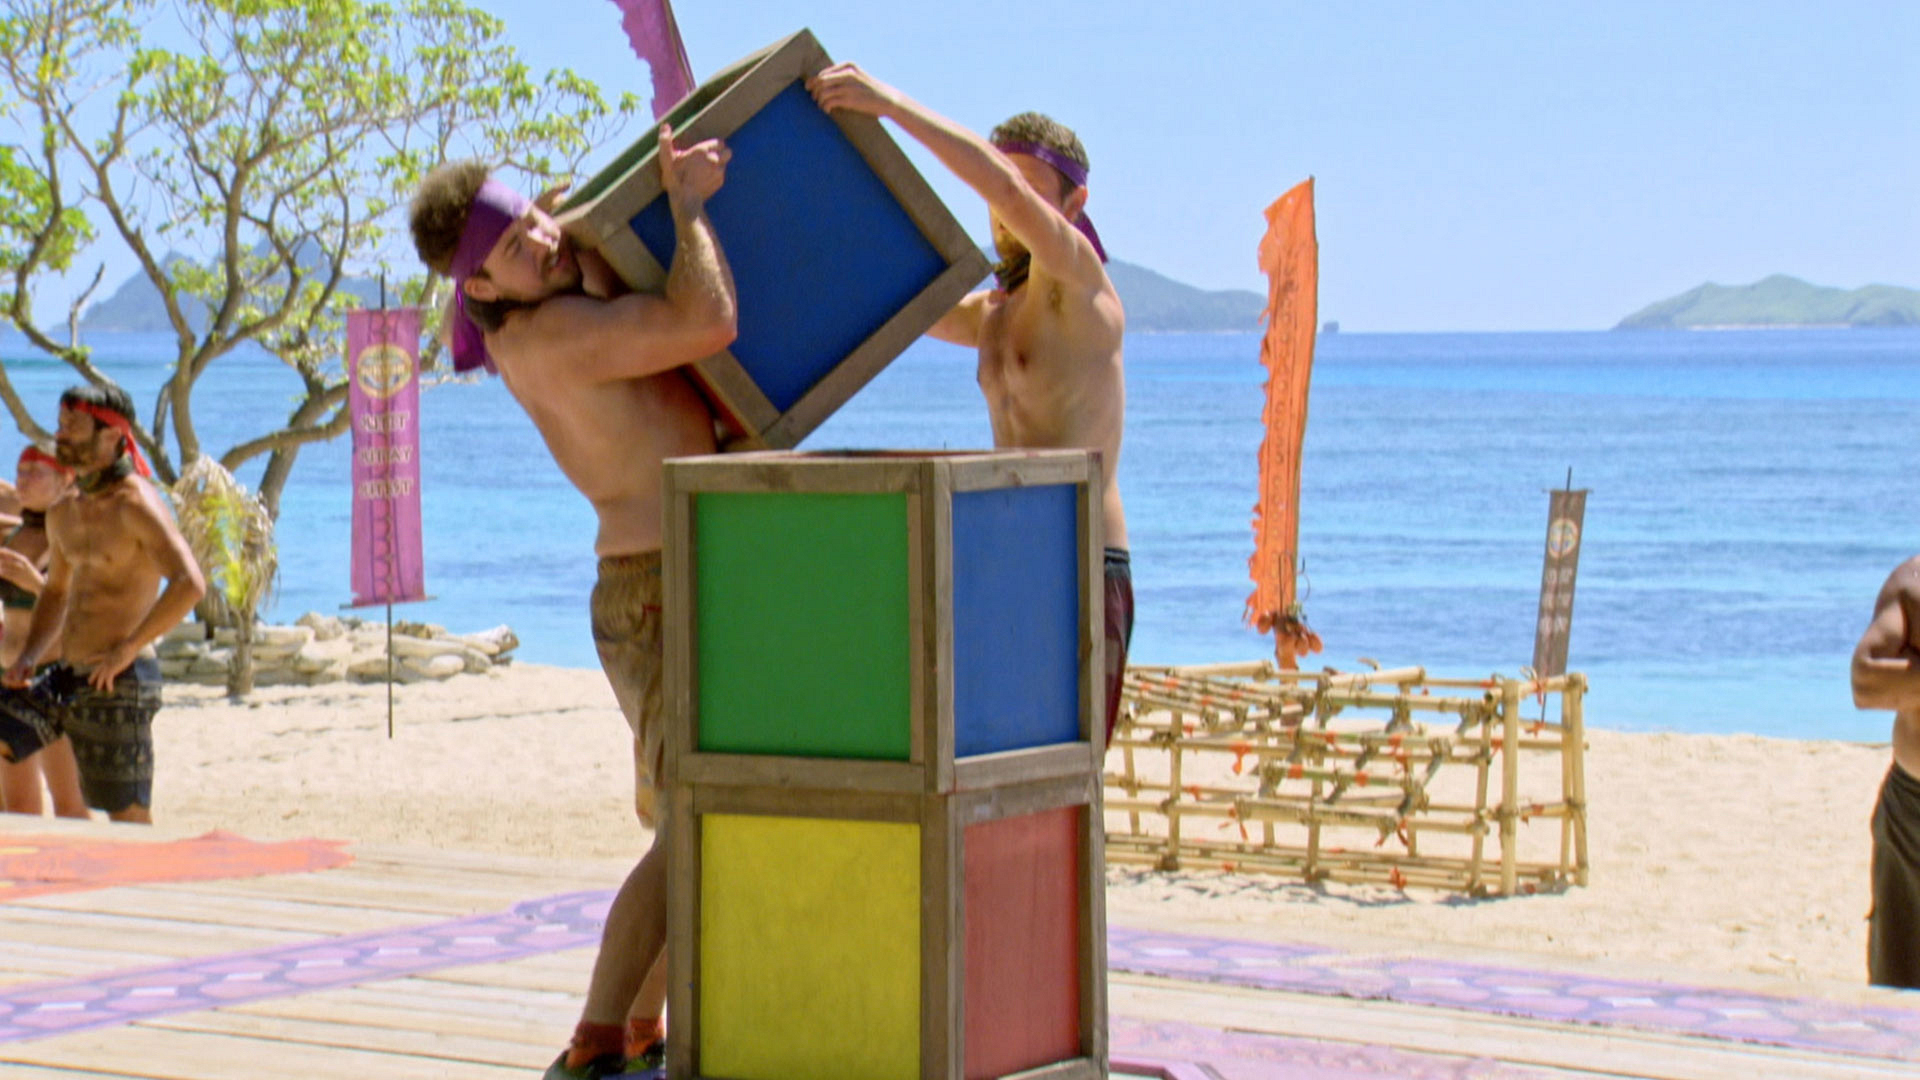 Zeke and Adam work hand-in-hand to place their third block on top.